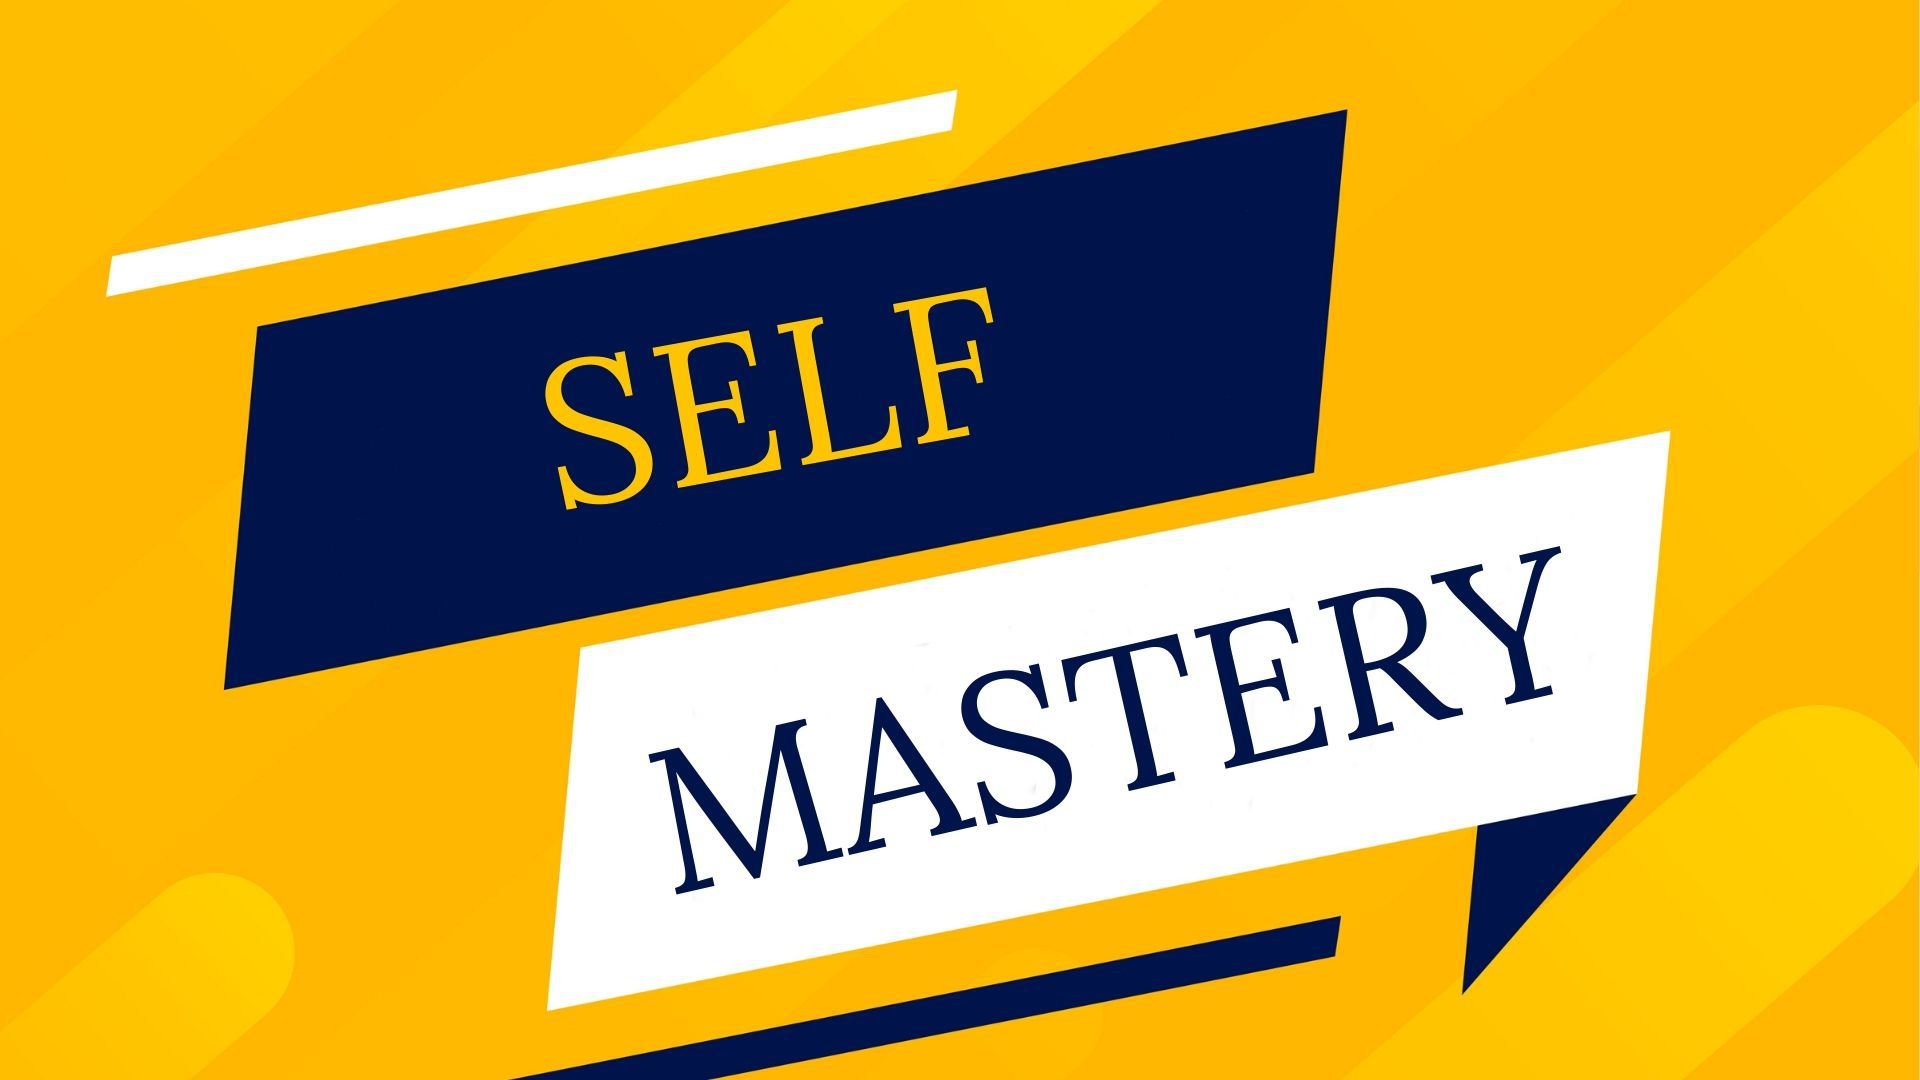 What is Self Mastery